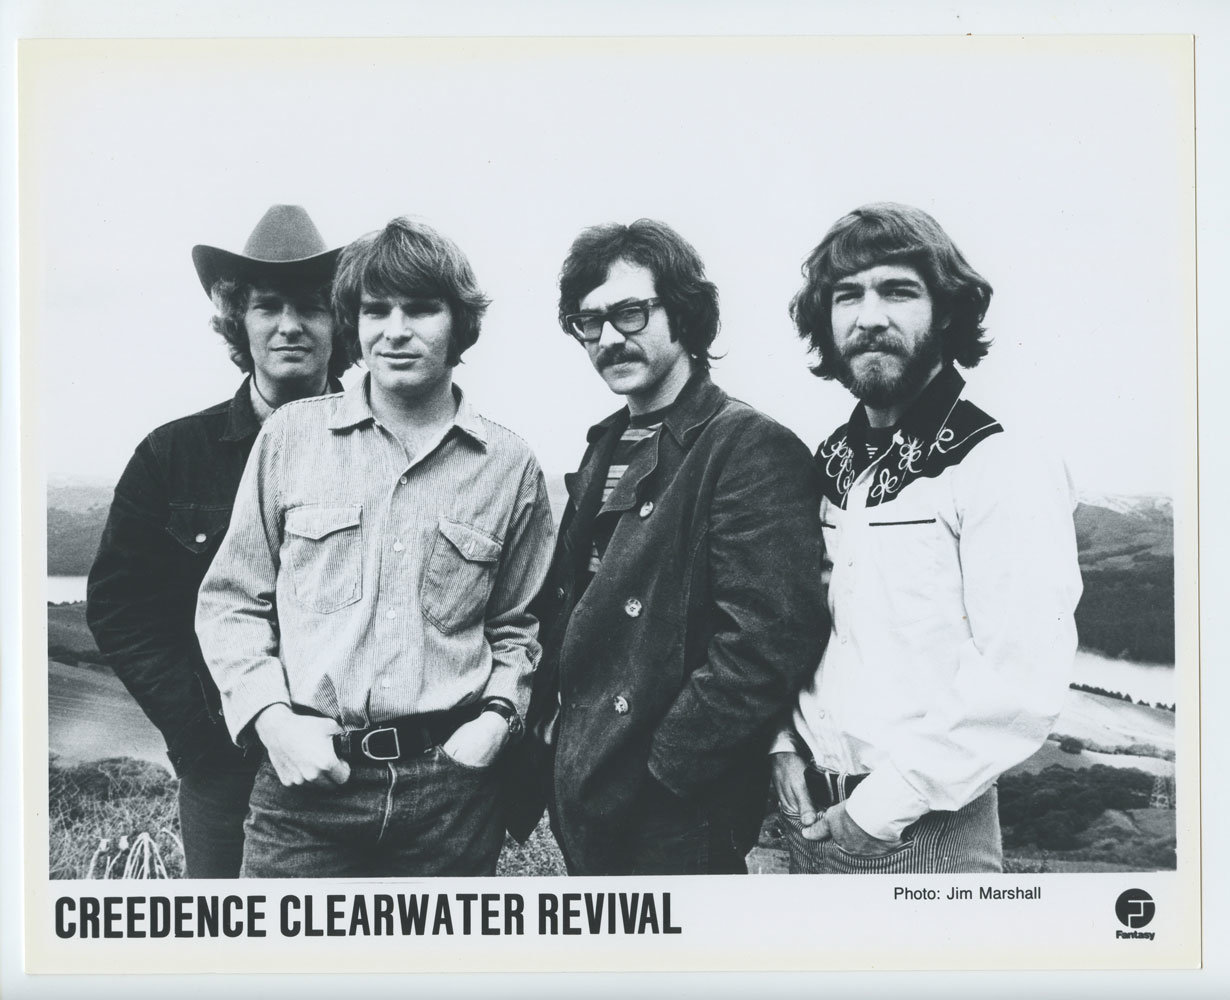 Credence Vintage Credence Clearwater Revival Bw 8 X 10 Promo Photo Original 1968